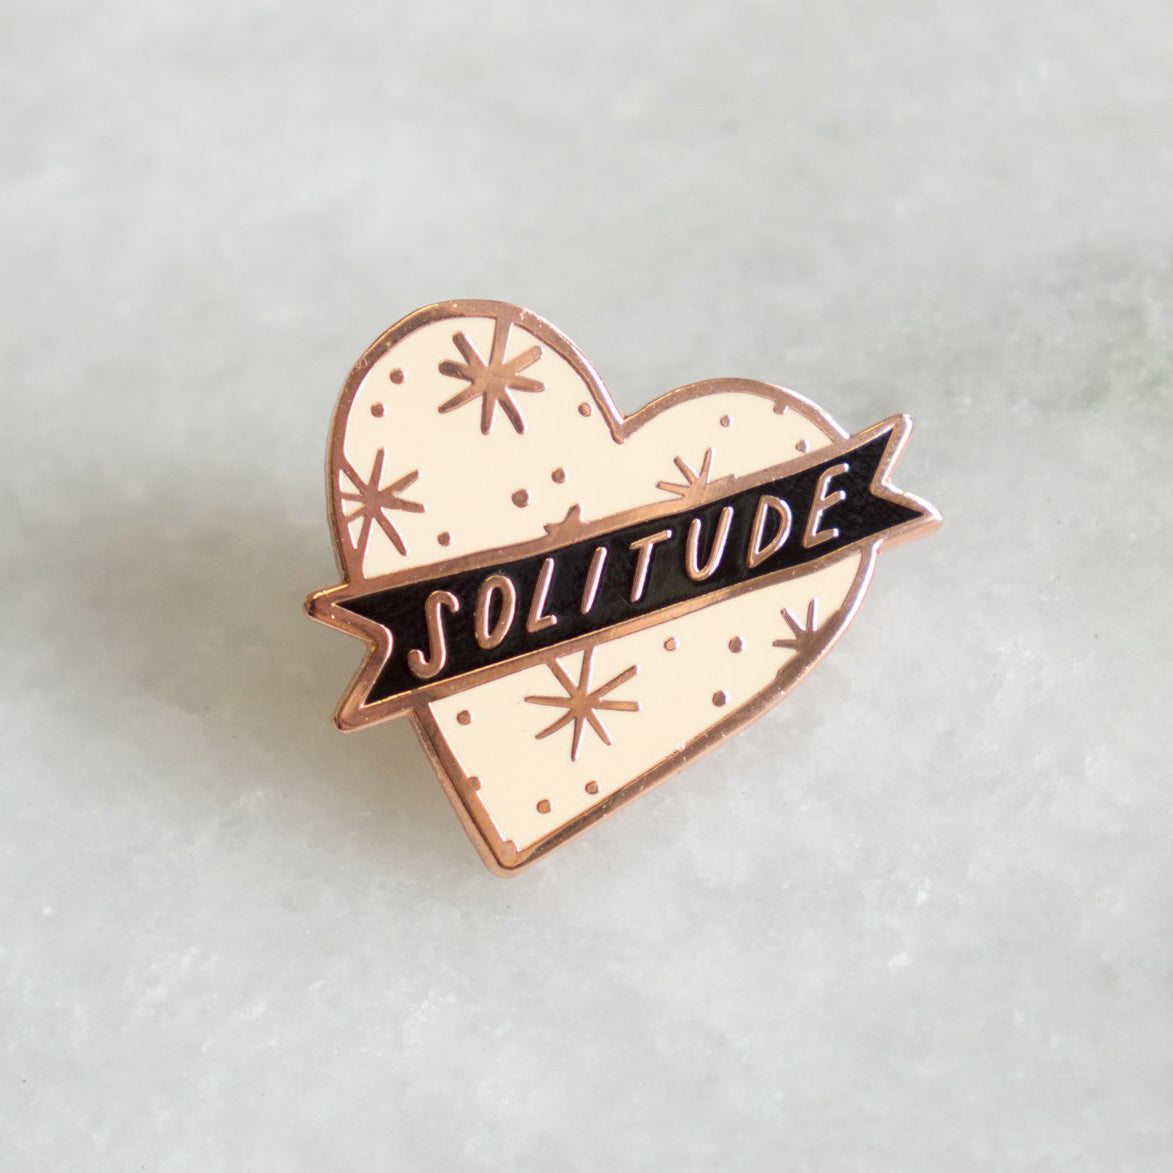 Solitude Pin